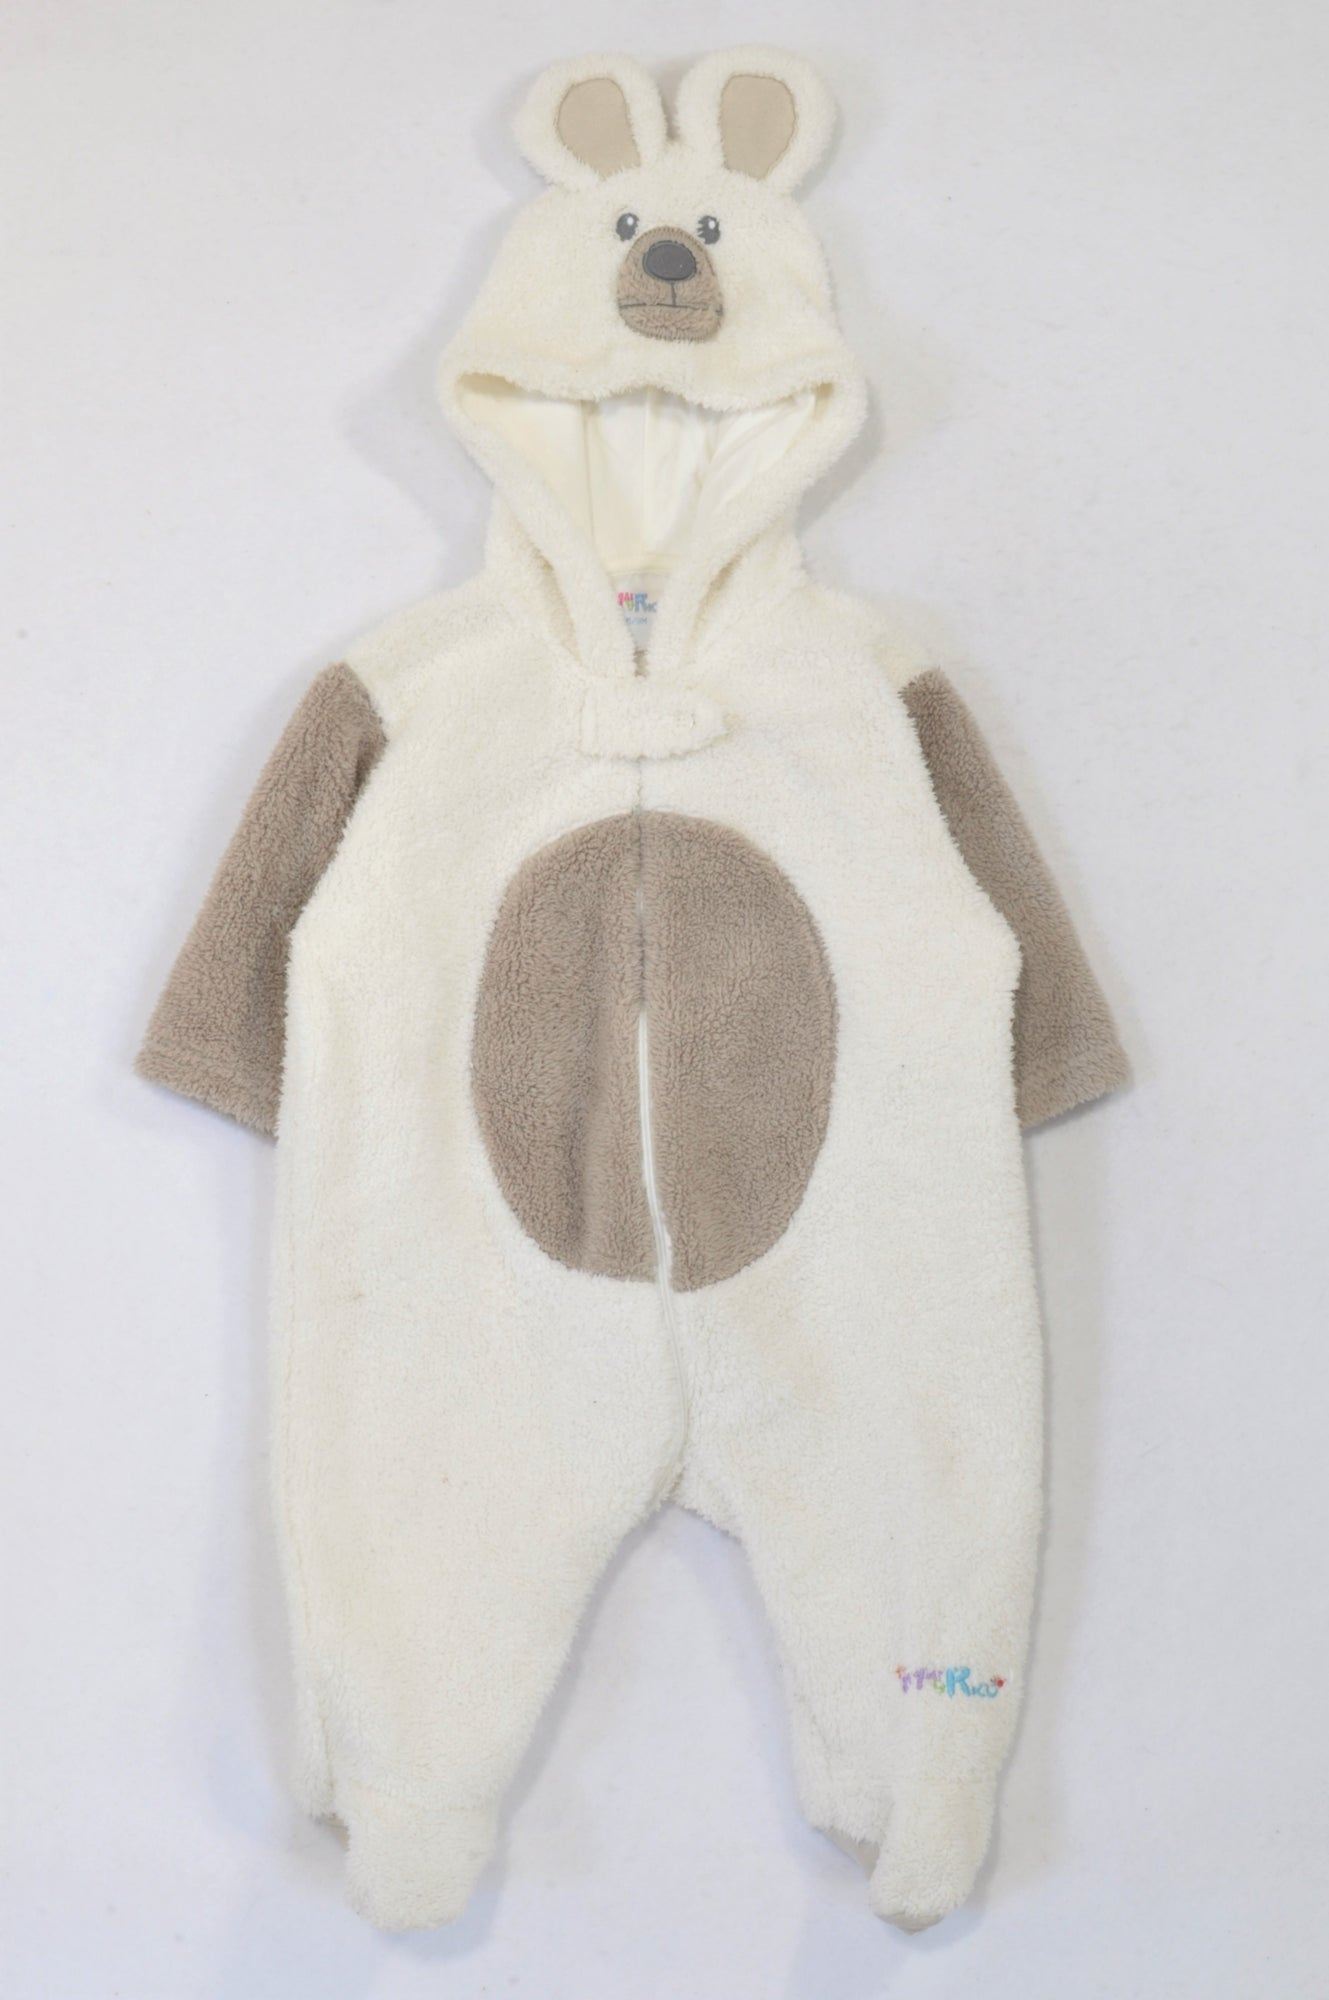 Mai Rico White & Brown Fleece Mouse Onesie Unisex 6-9 months